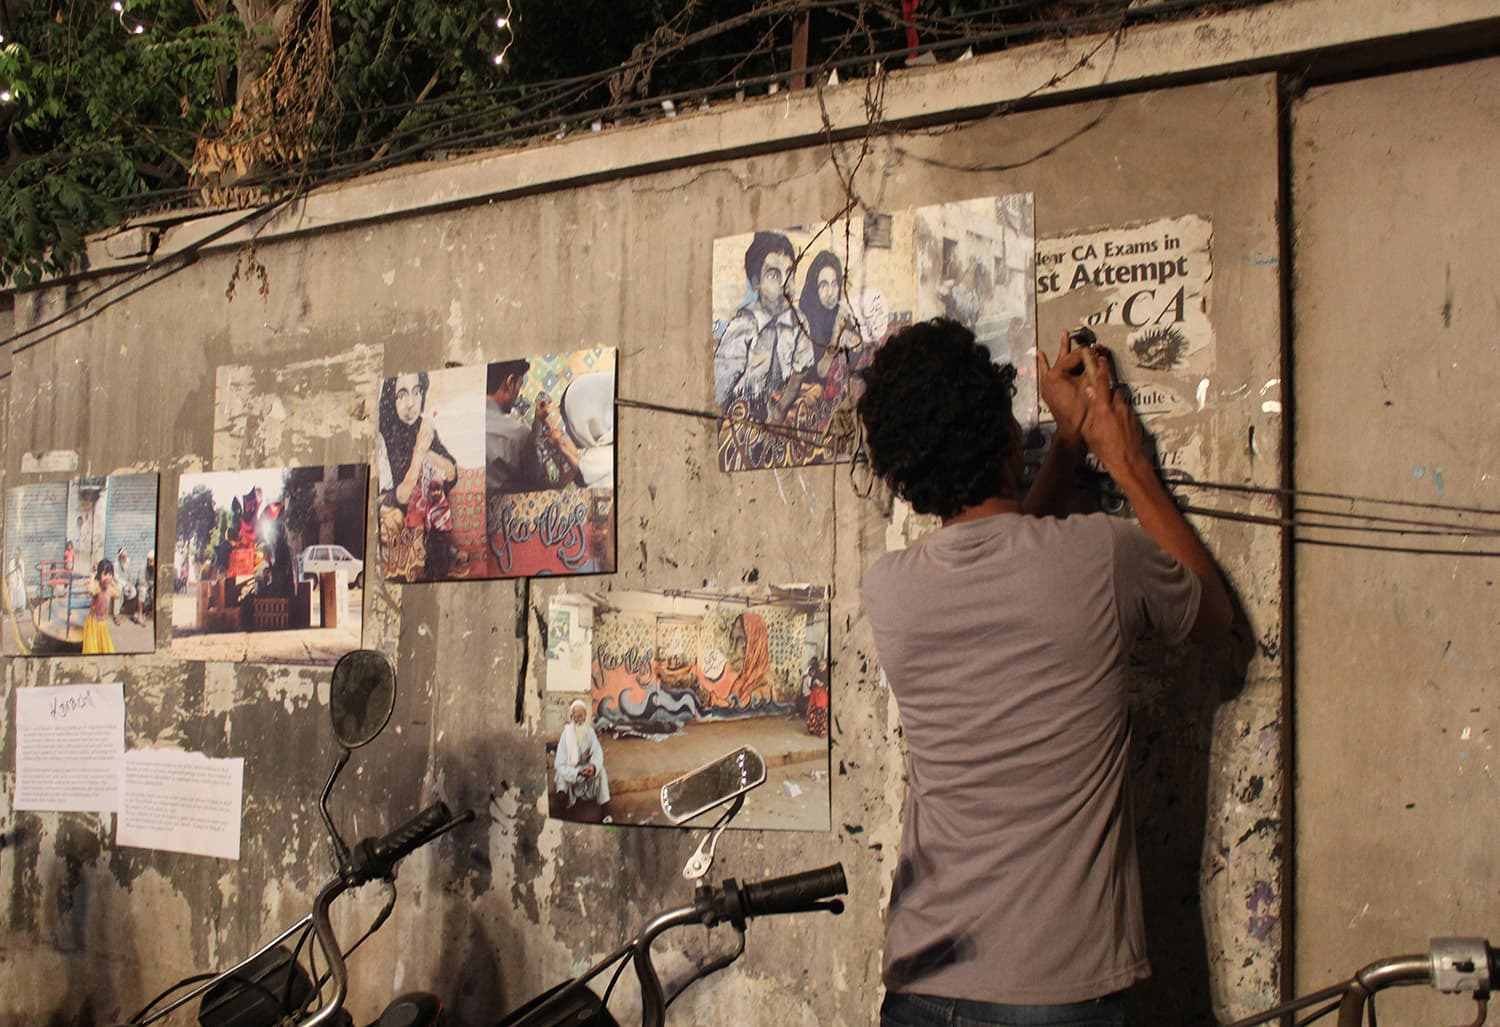 A man hammers the pictures on the wall. — Photo by Zeresh John